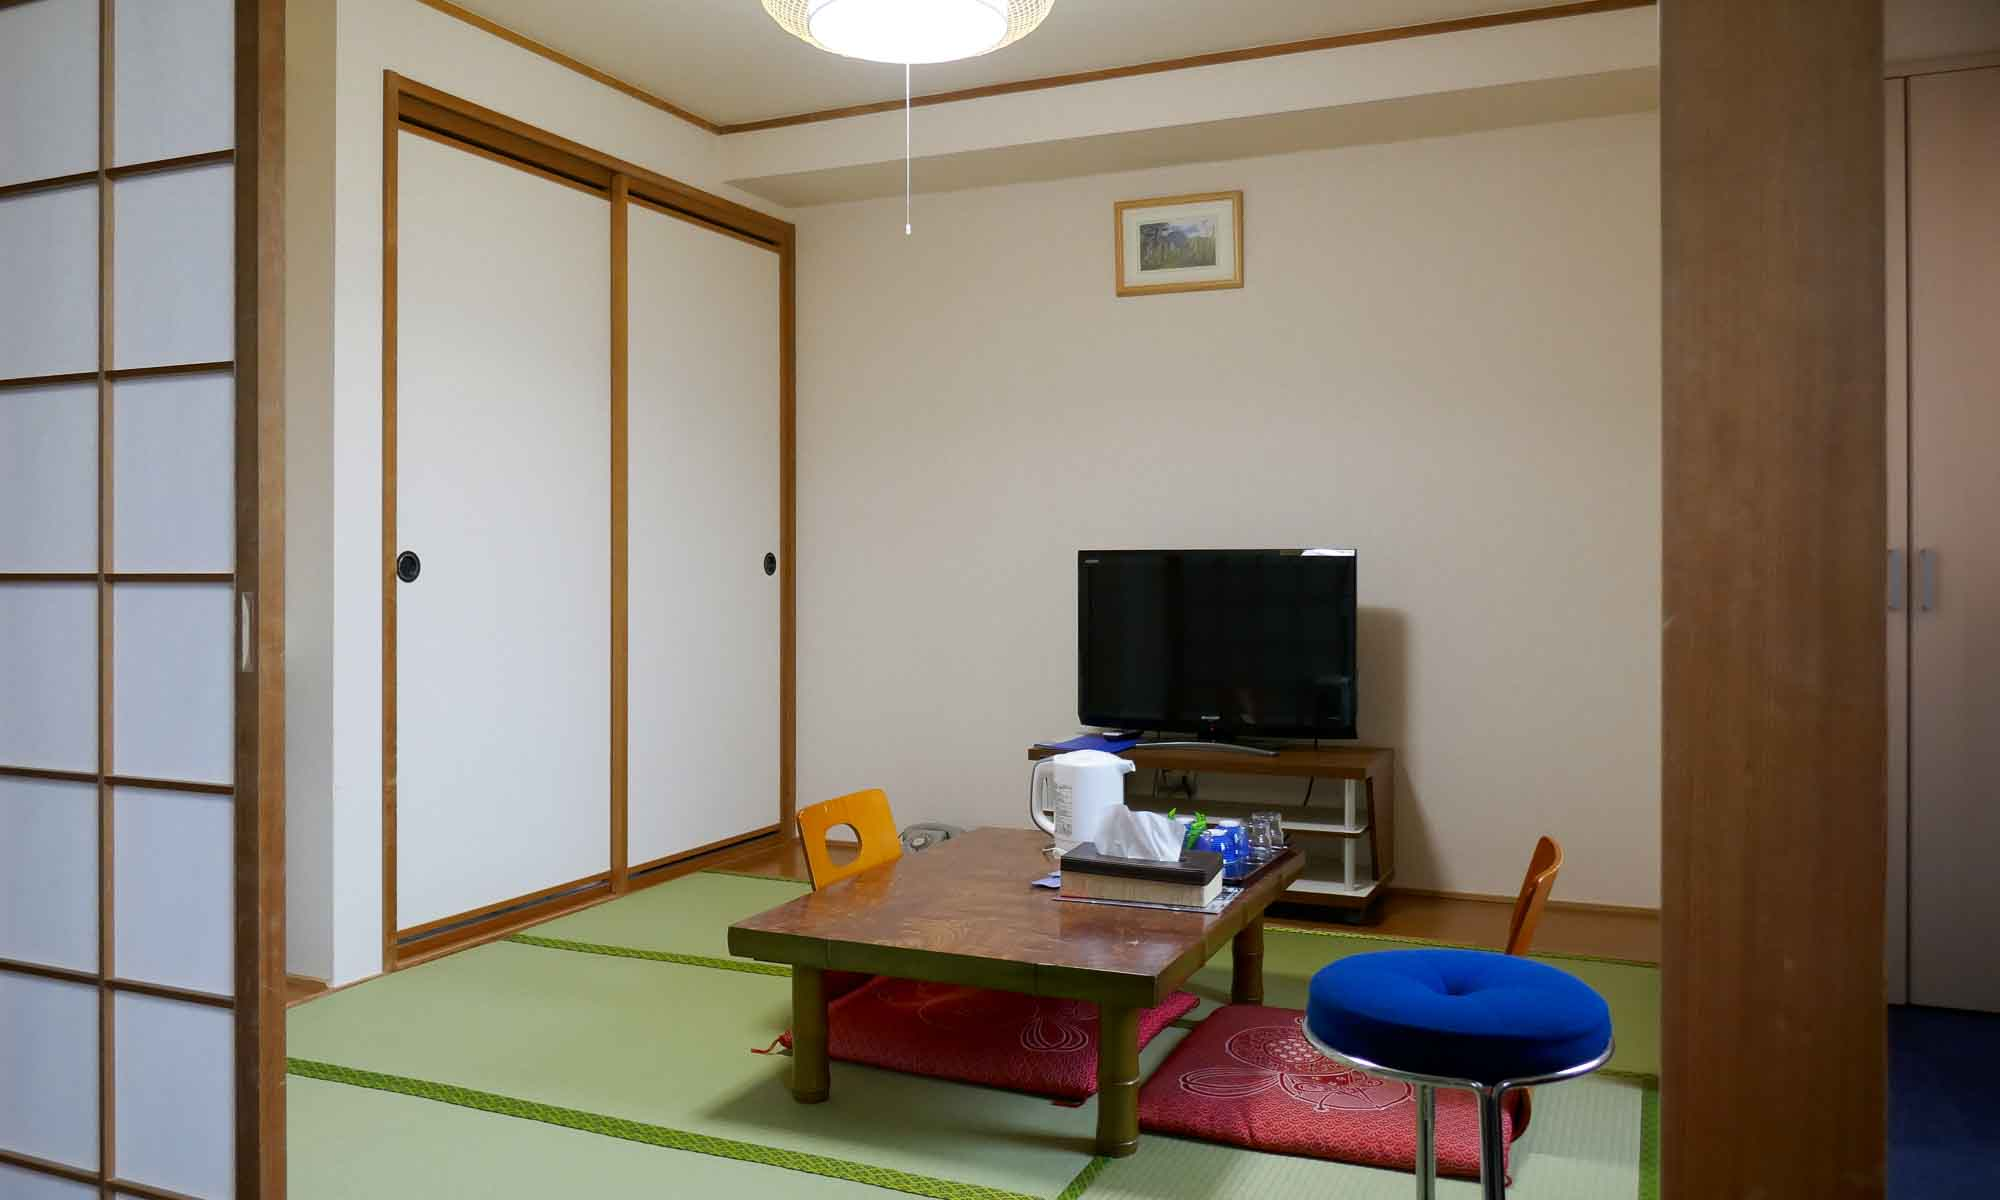 The tatami area in our room